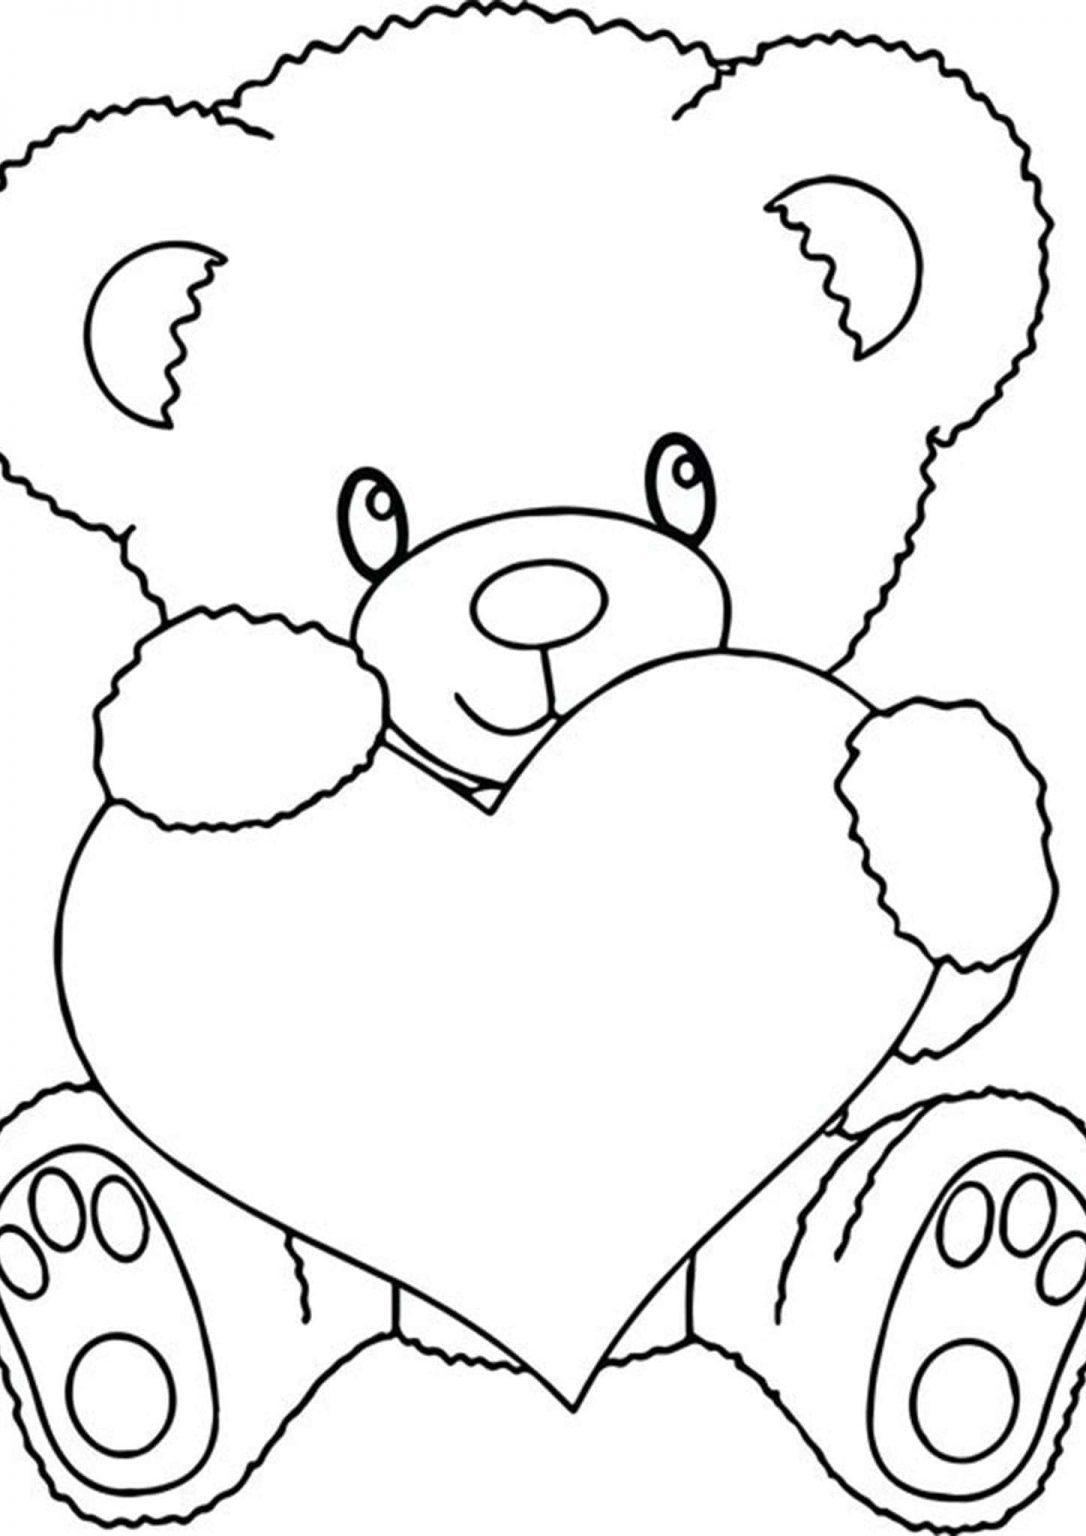 Free Easy To Print Bear Coloring Pages Teddy Bear Coloring Pages Bear Coloring Pages Heart Coloring Pages